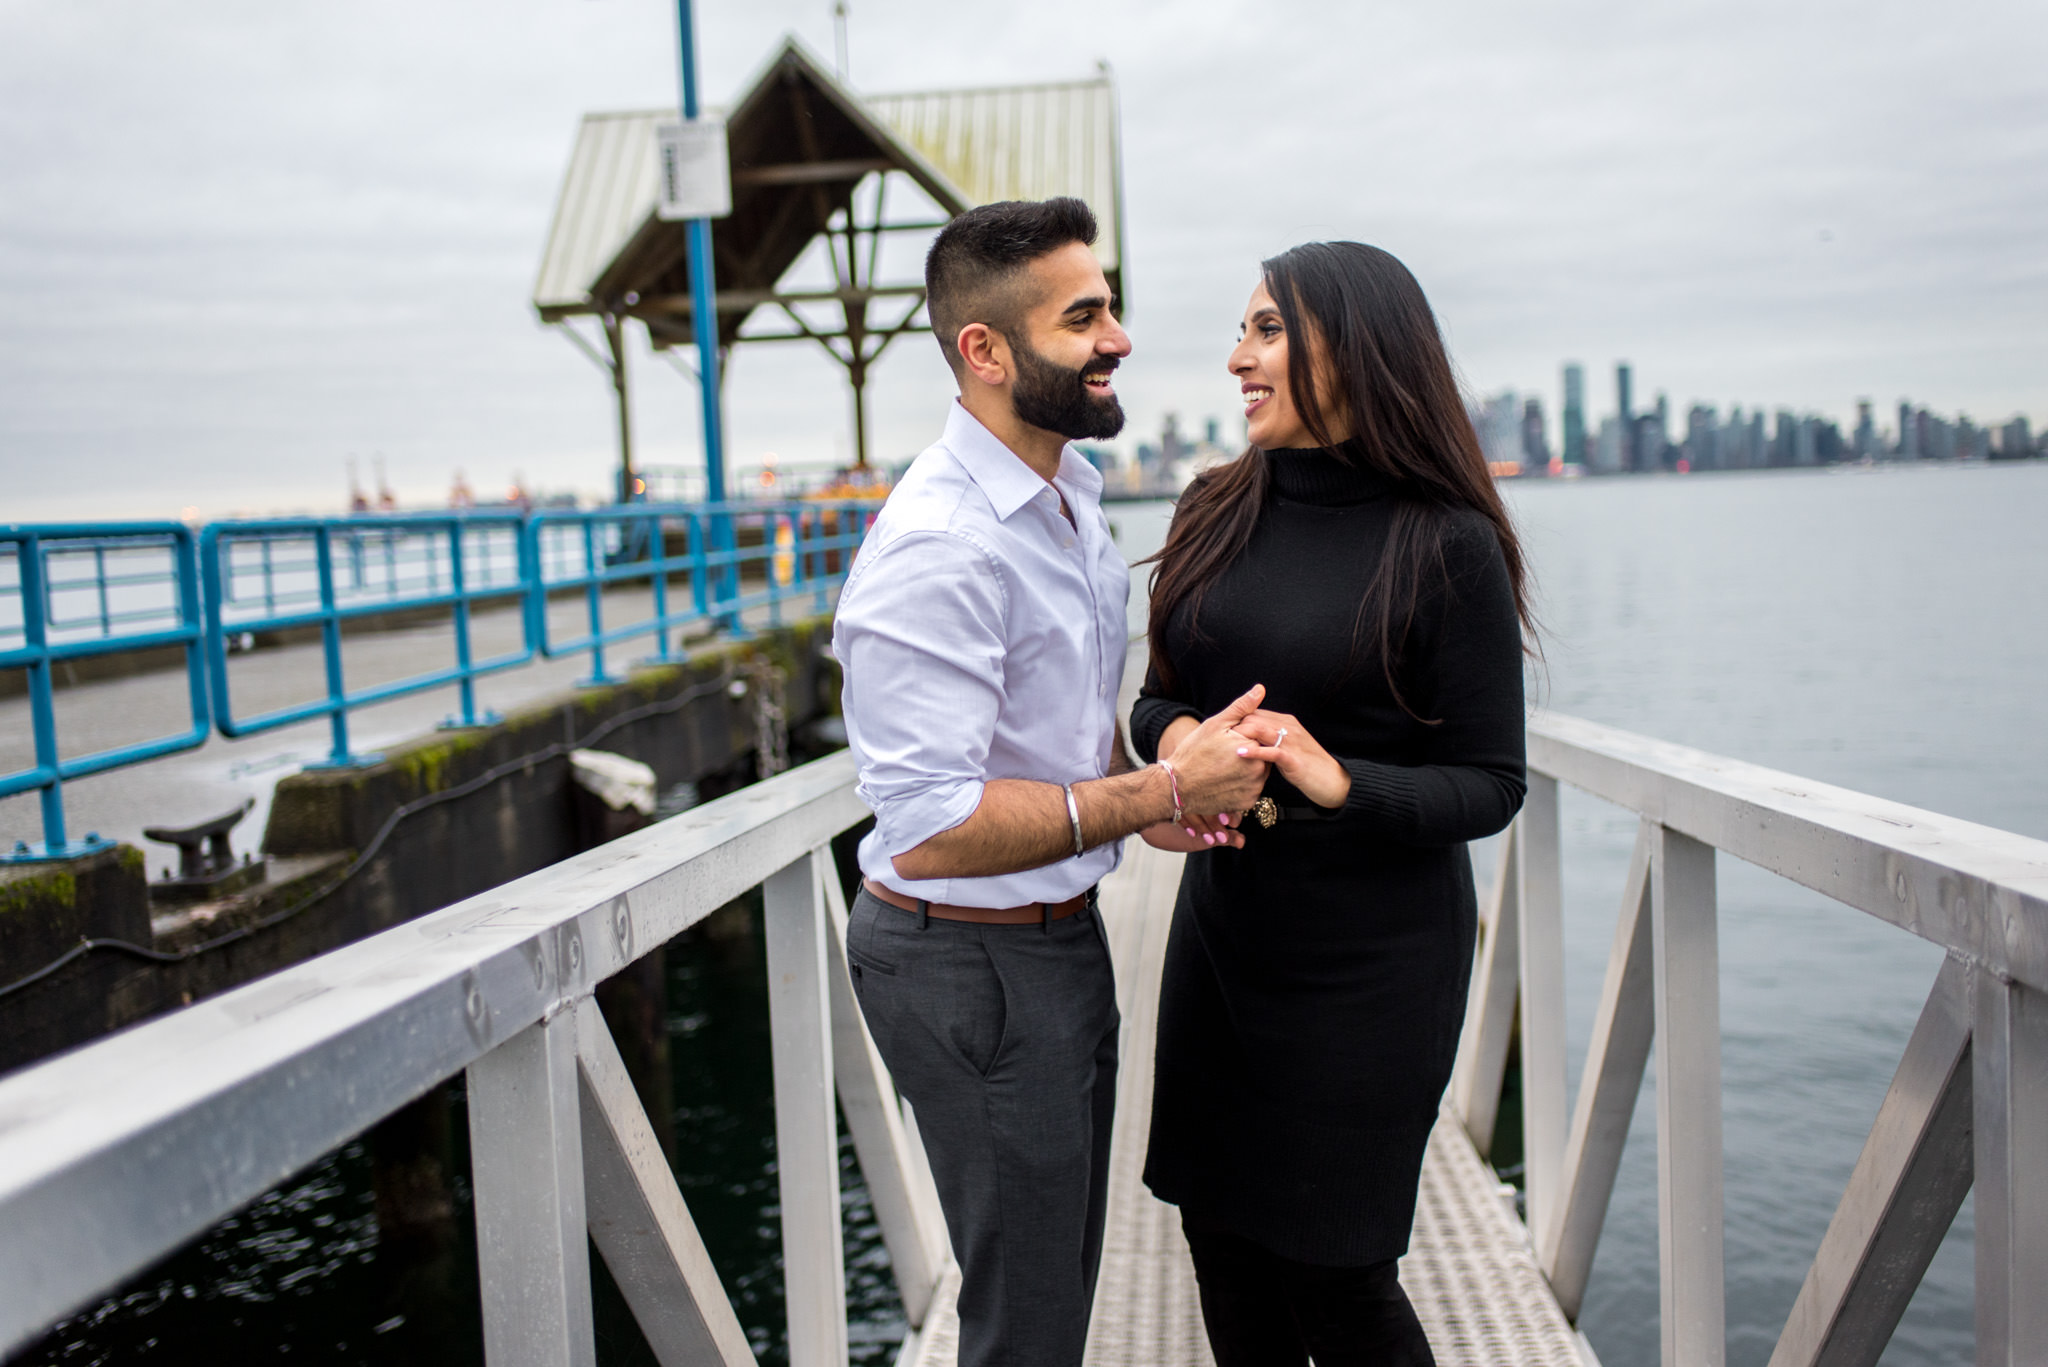 Lonsdale Quay Proposal Photographer-97.JPG